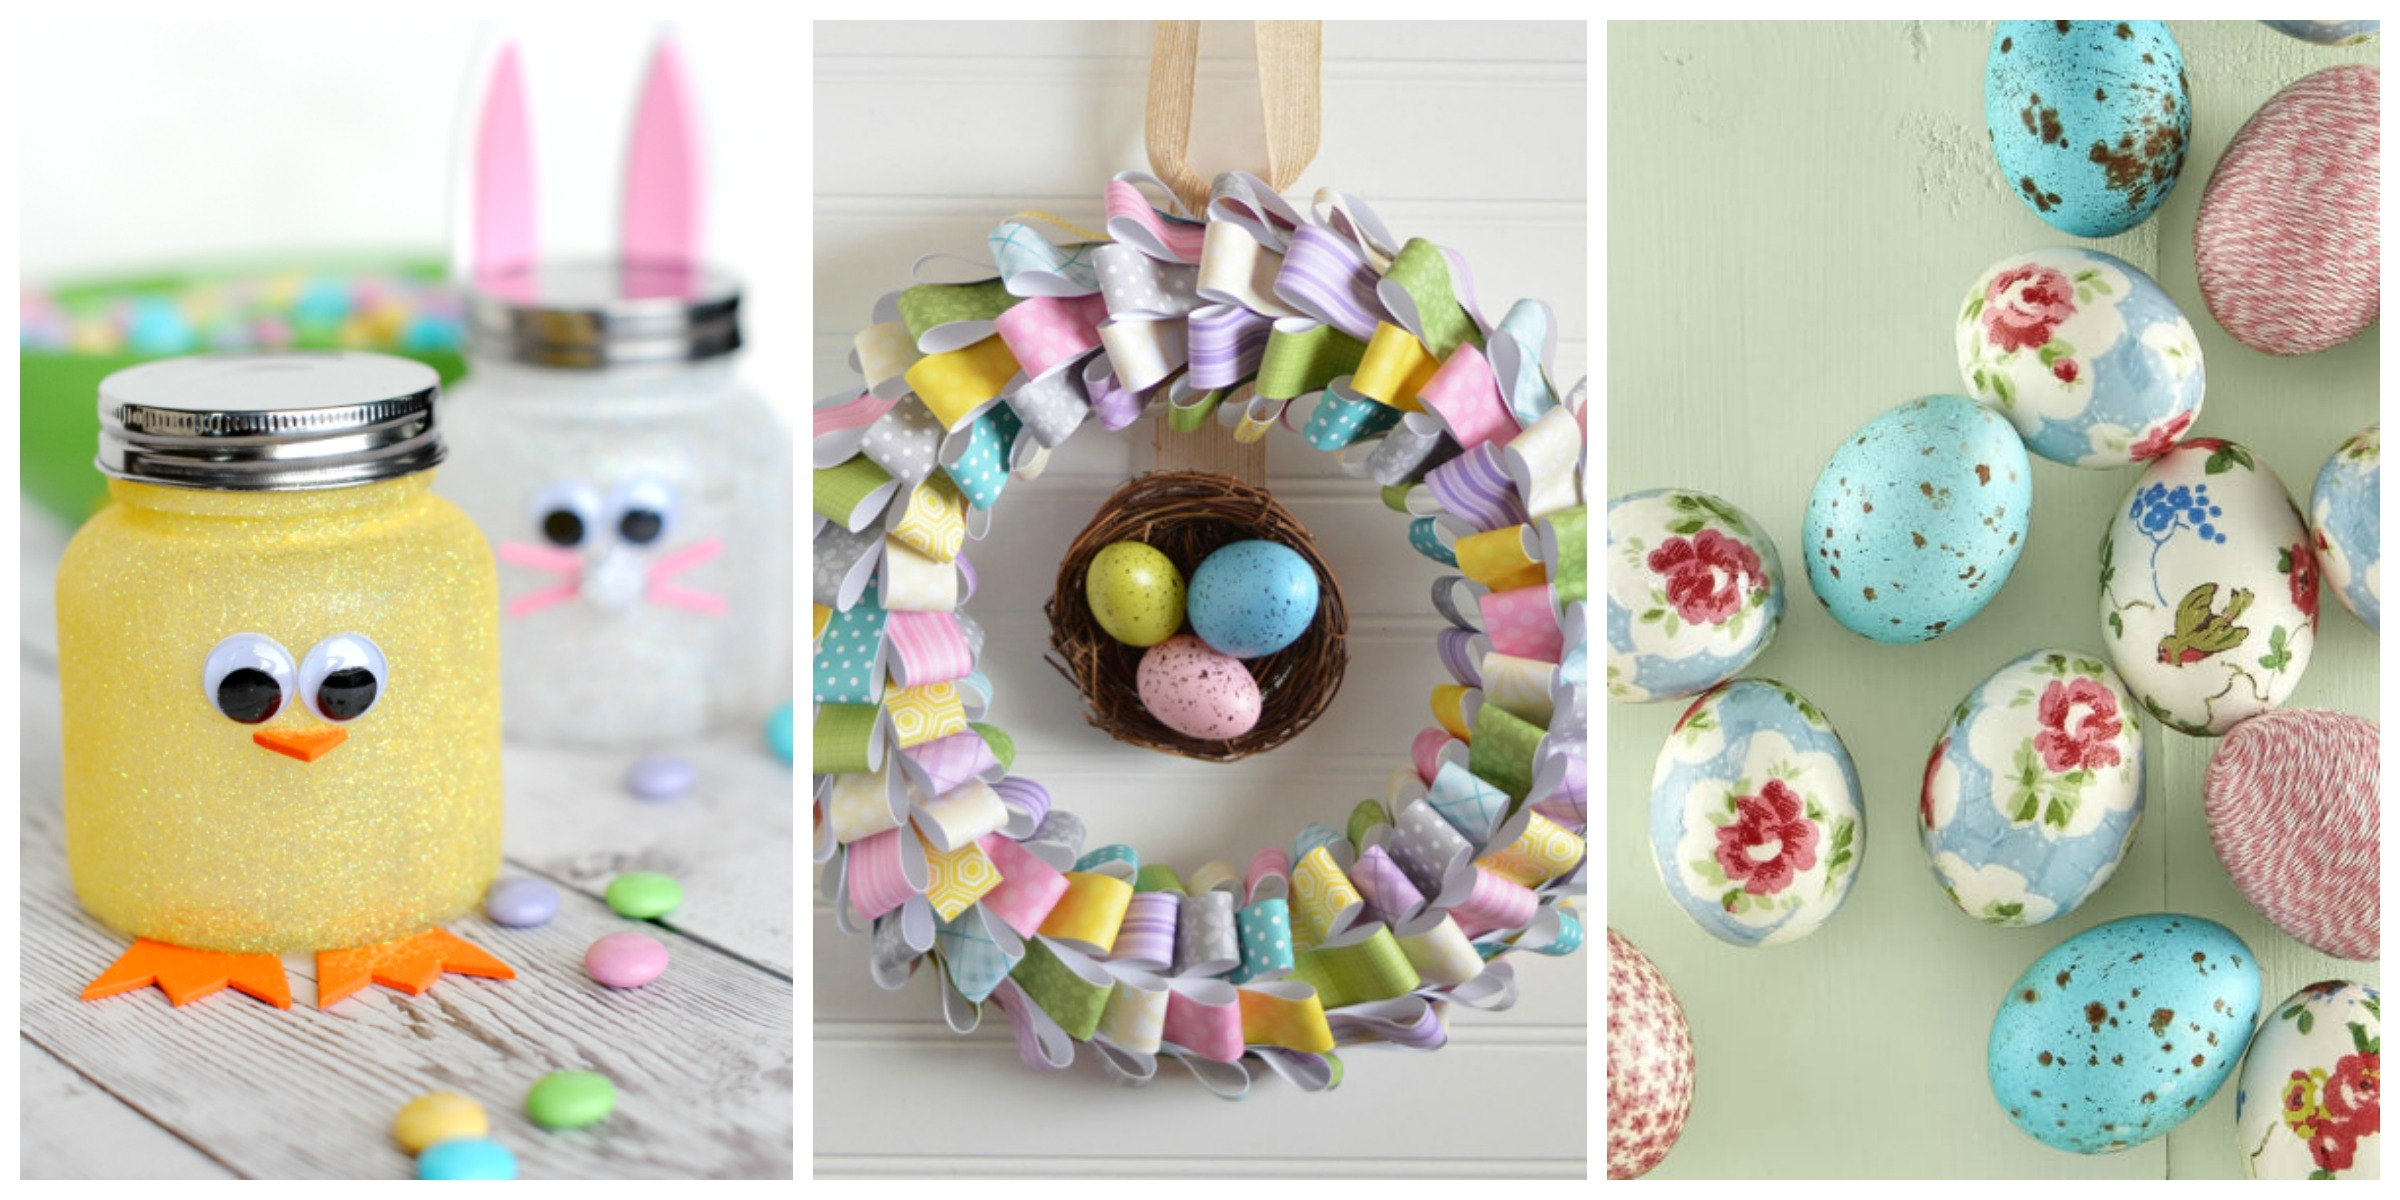 60 easy easter crafts ideas for easter diy decorations Images for easter decorations